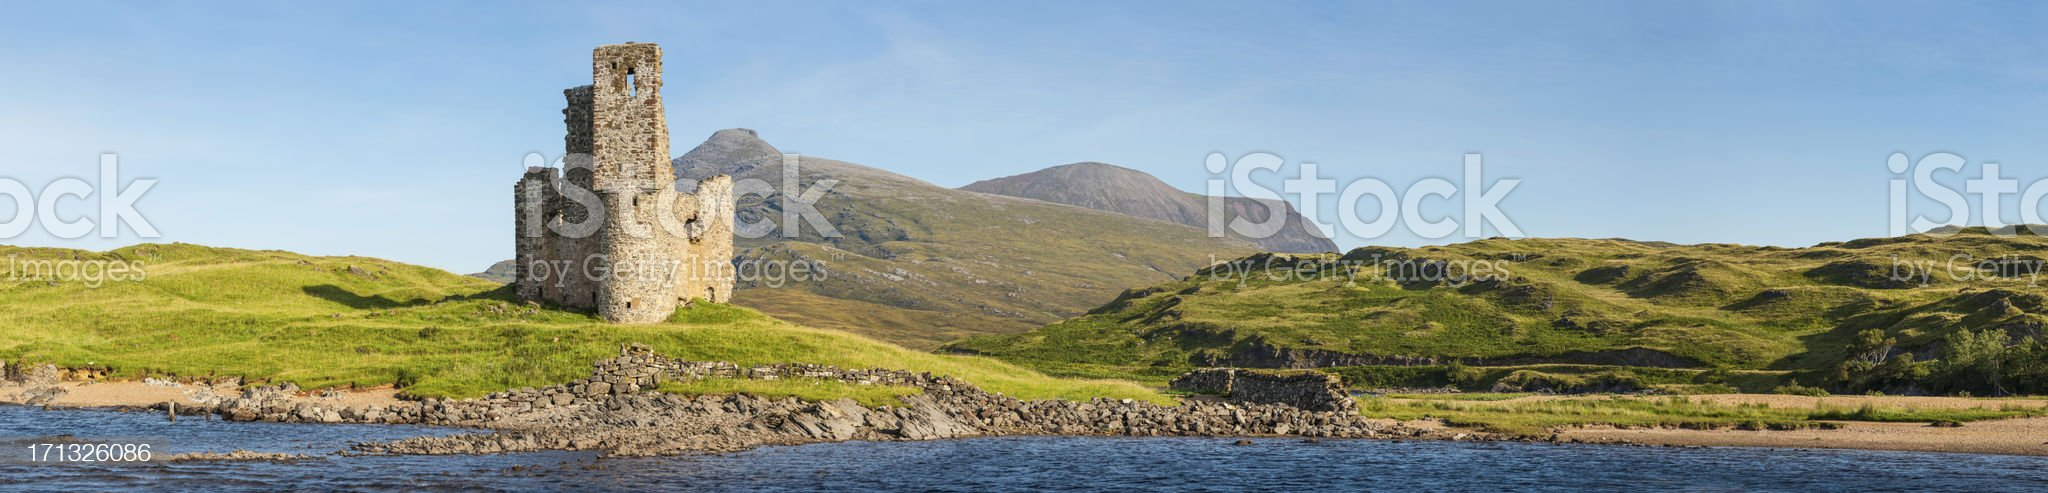 Scotland castle ruins beside loch and mountain peaks panorama royalty-free stock photo